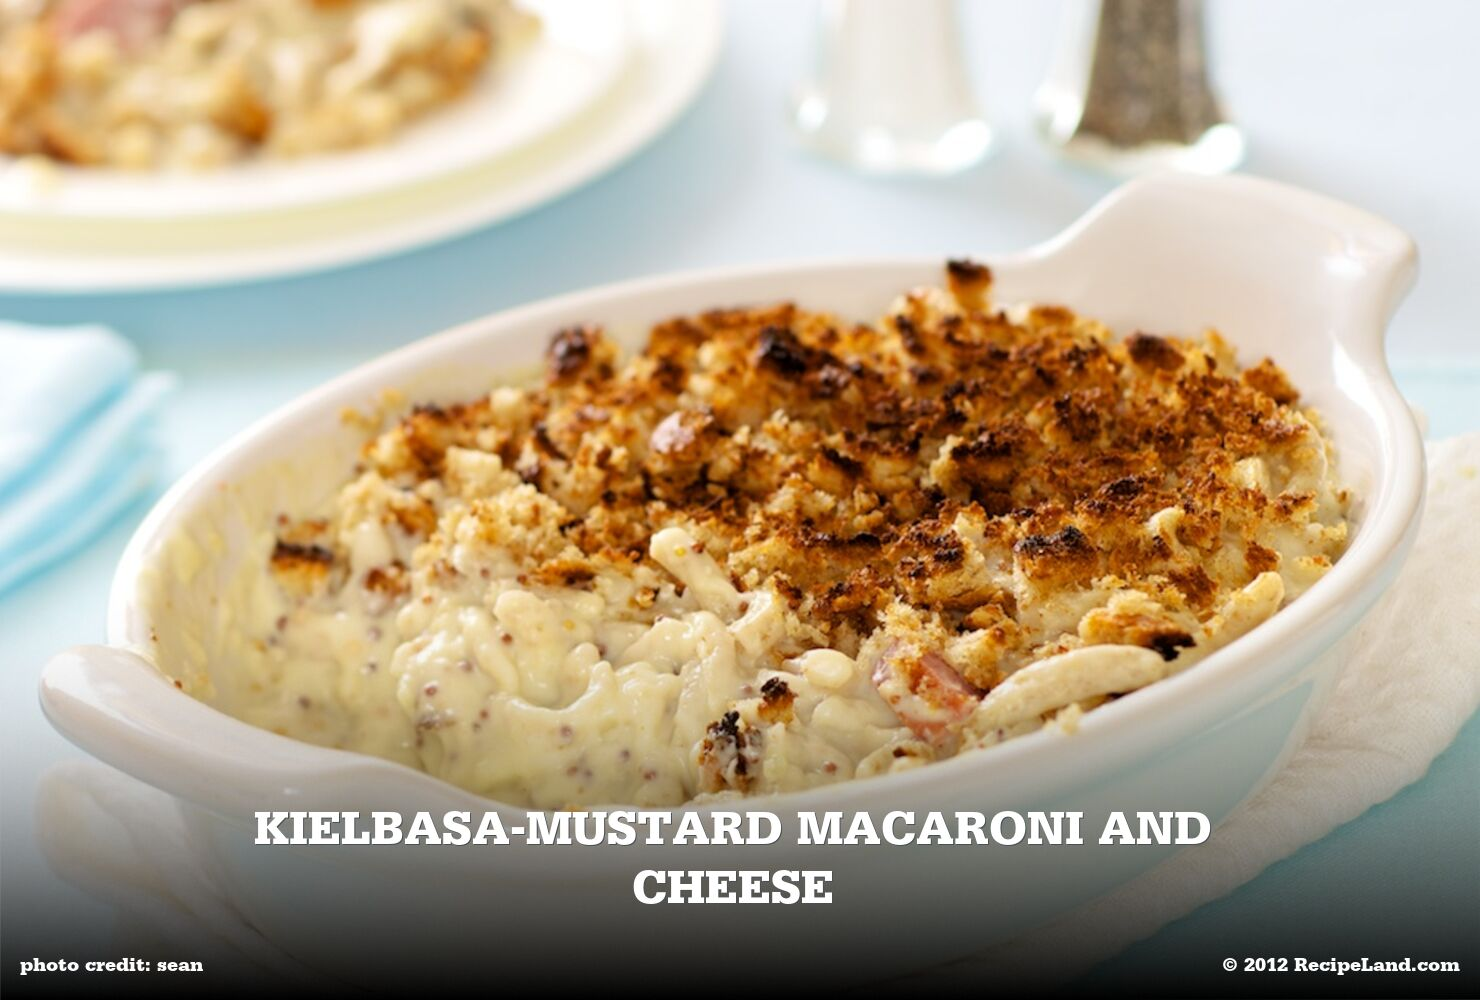 Kielbasa-Mustard Macaroni and Cheese